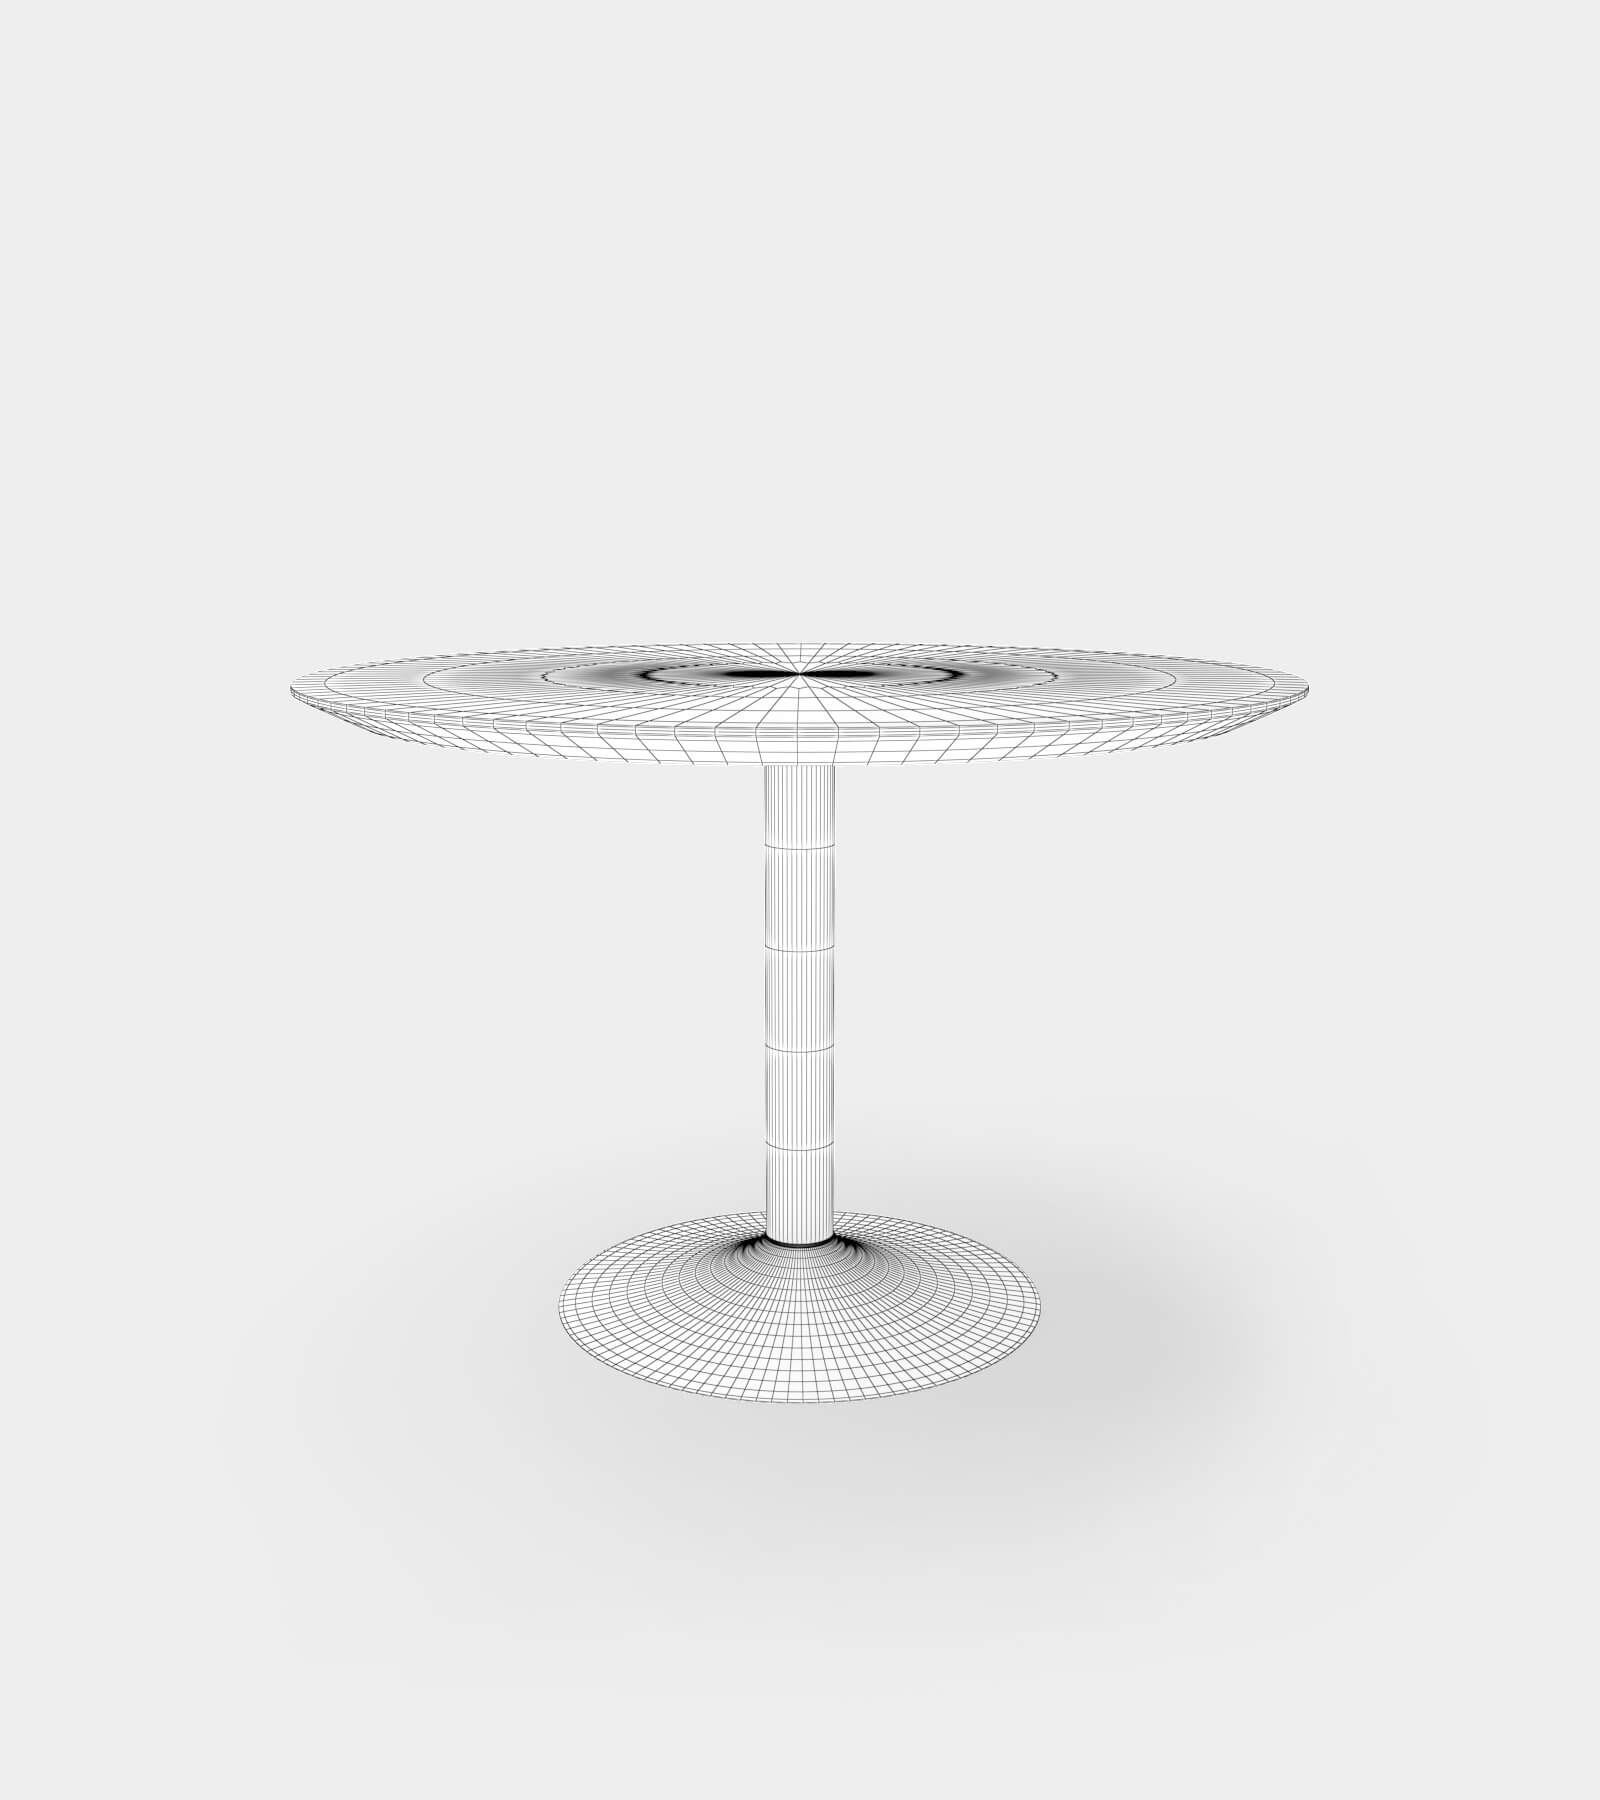 Dining table round for 4 people-wire-1 3D Model